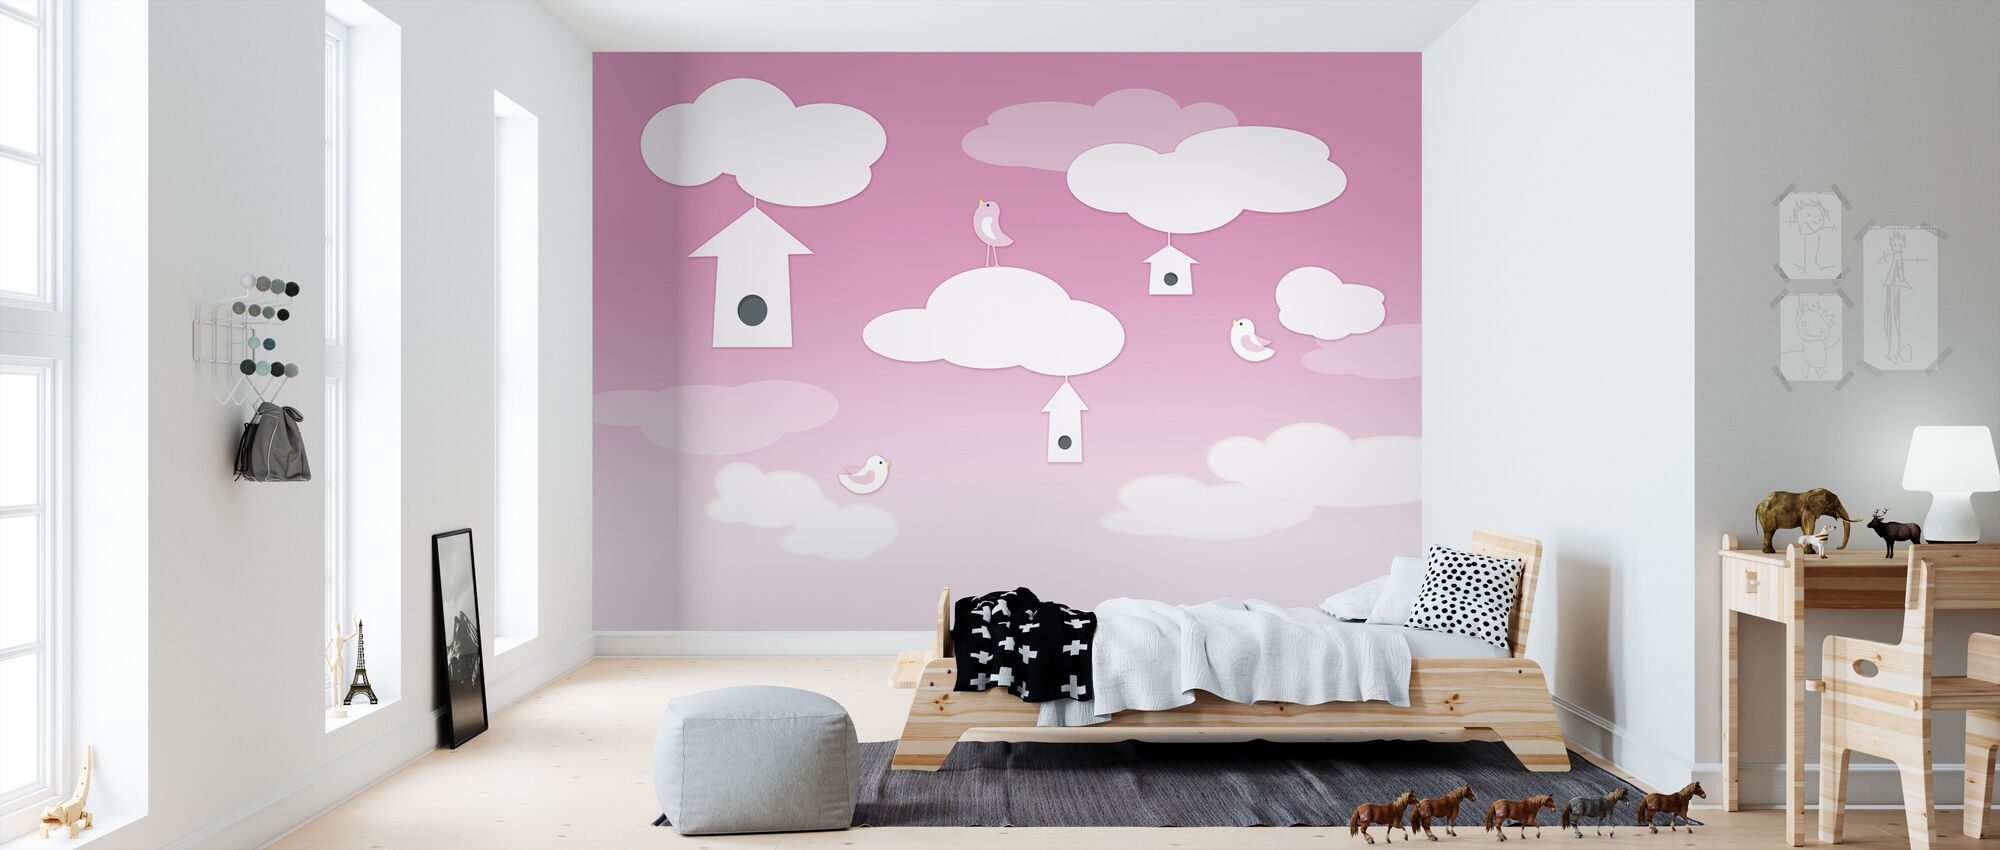 Birds up High - Pink - Wallpaper - Kids Room